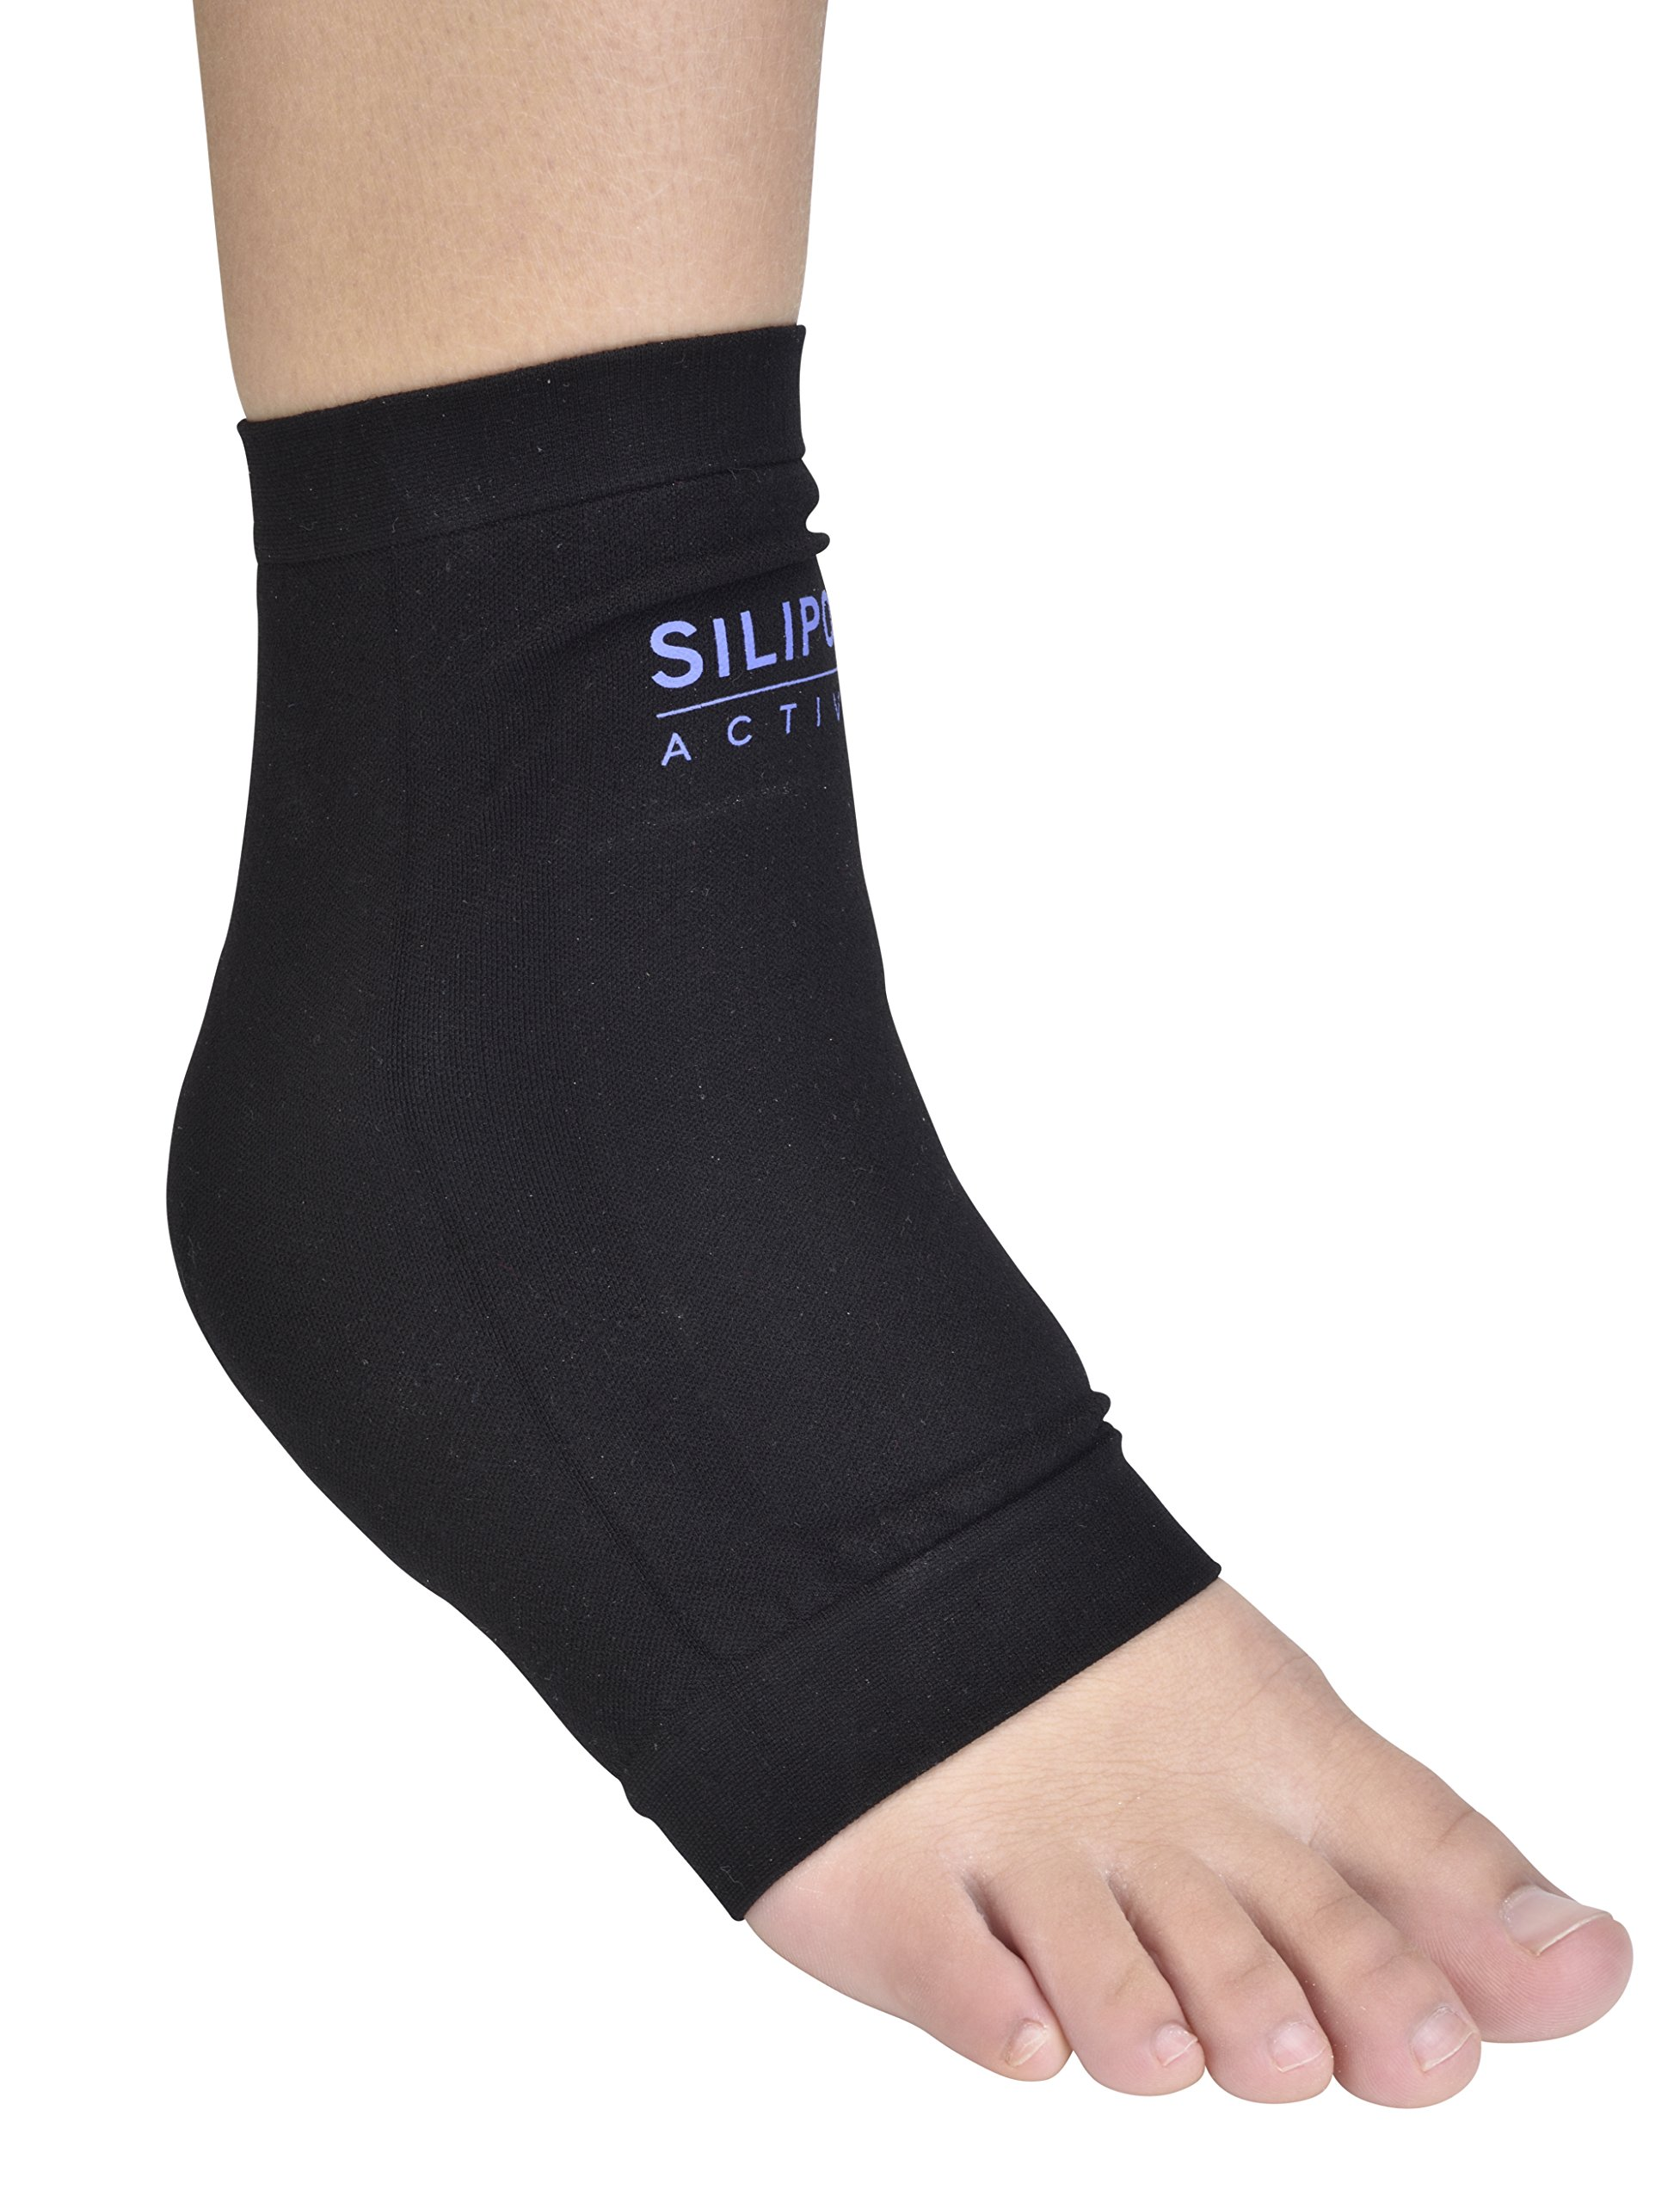 Silipos Active 7202  Boot Bumper  - Ankle Compression Sleeve with Mineral Oil Gel Pads. Foot Care Products